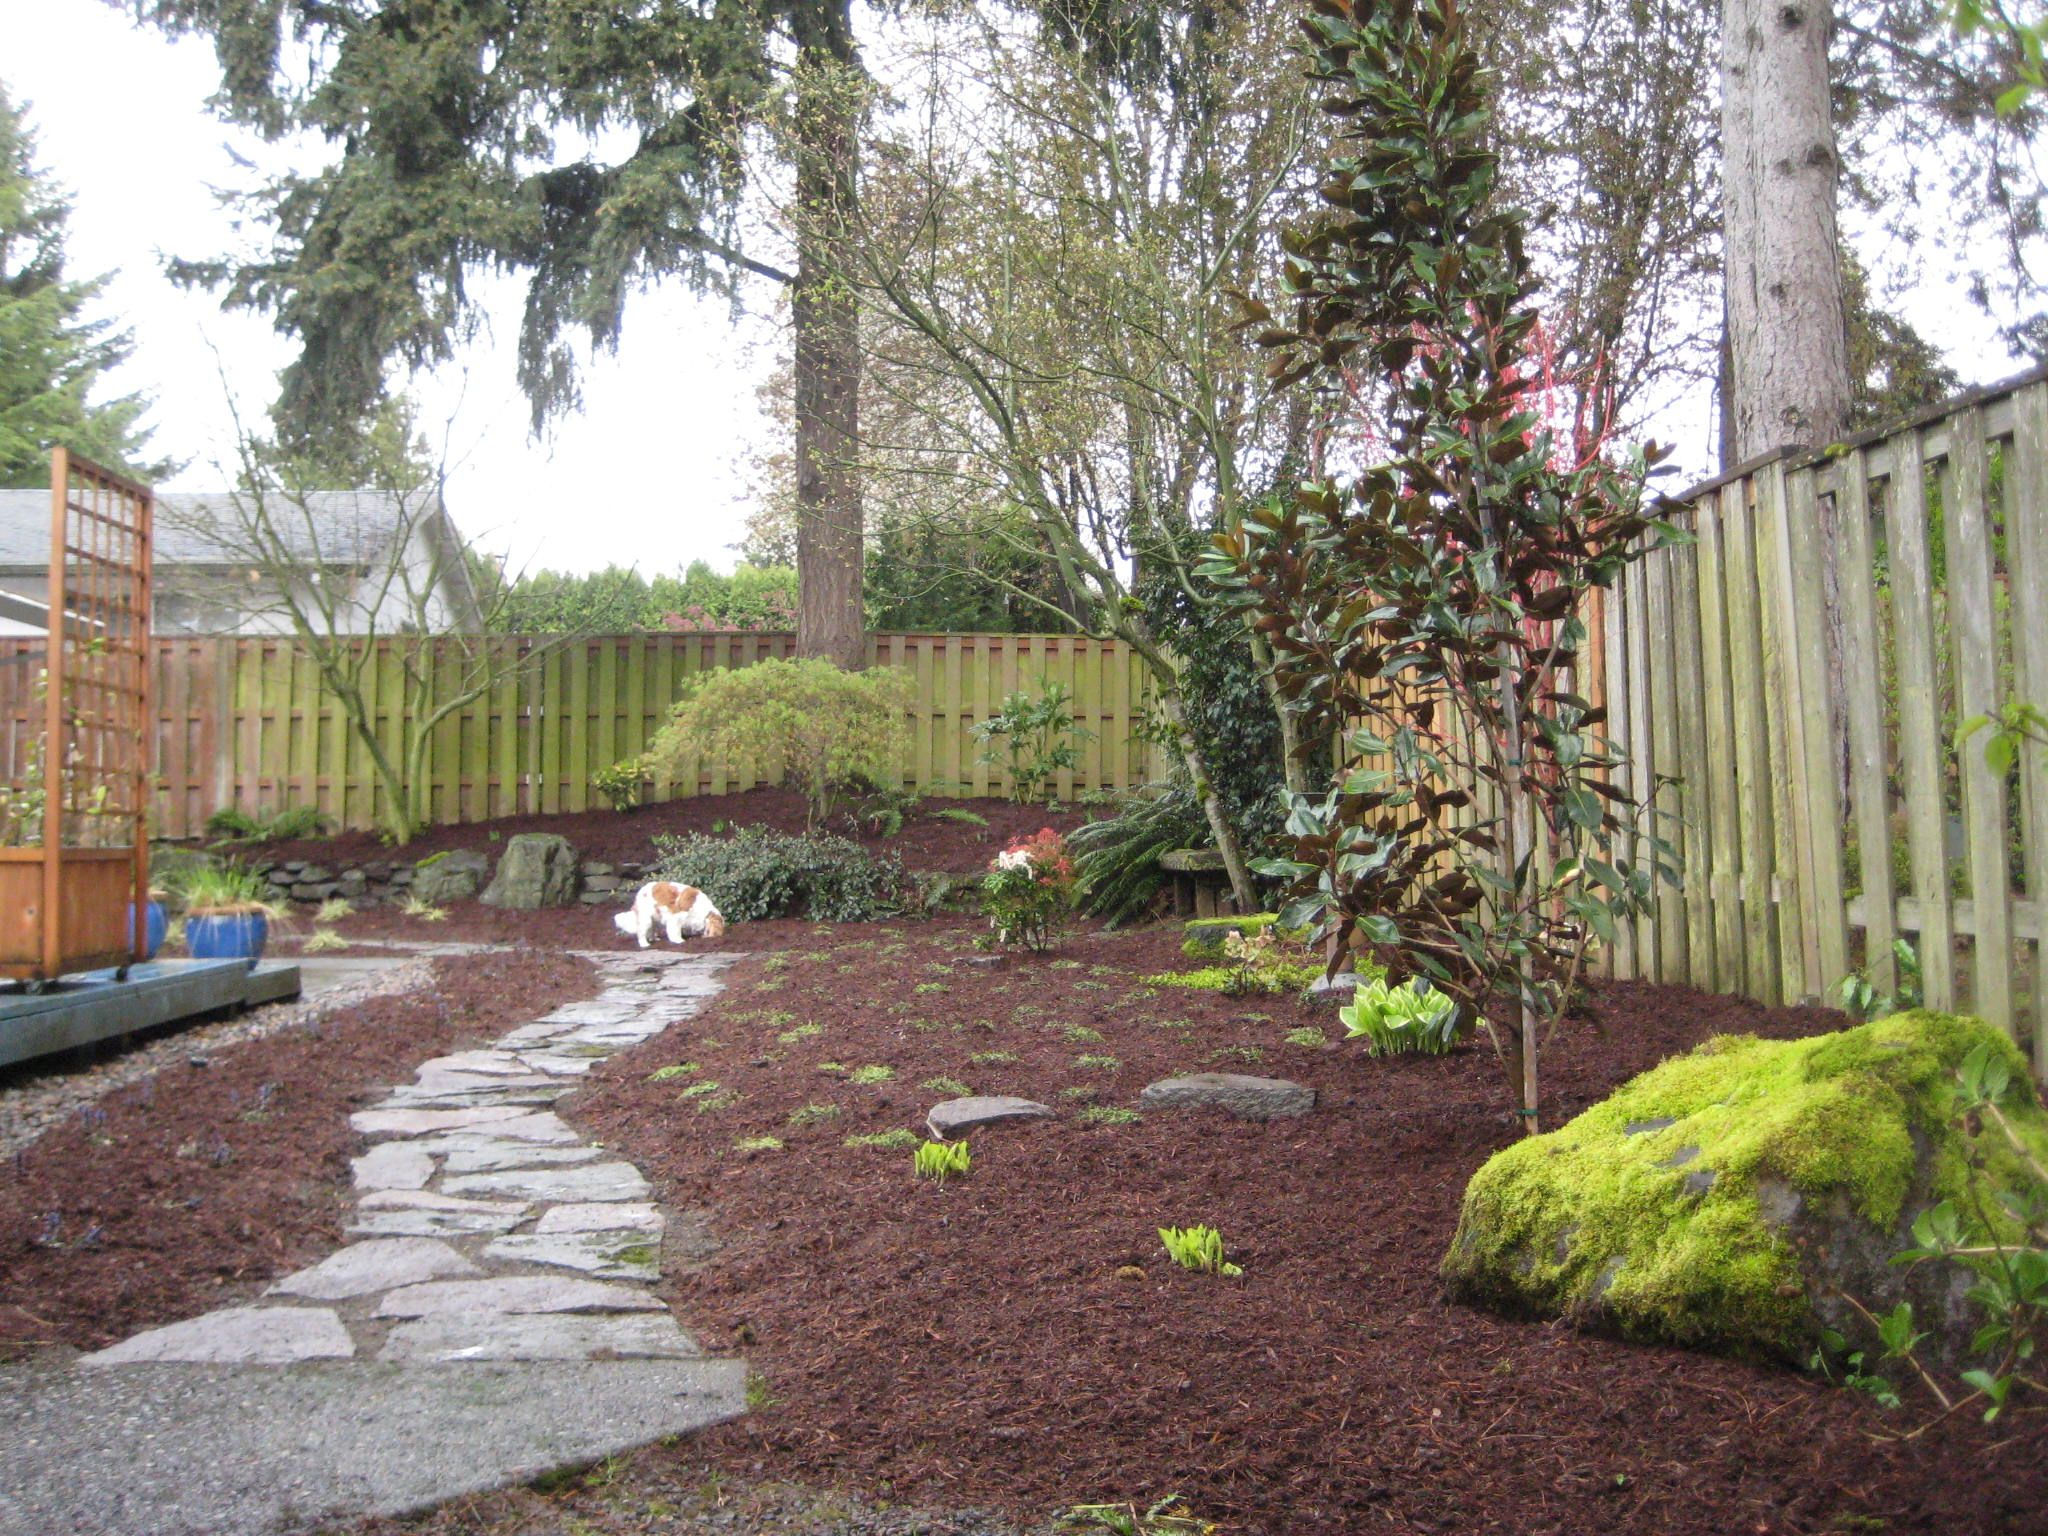 Backyard Ideas For Dogs perfect turf dog runs 1 no muddy paws 2 much easier to This Is What I Want To Do In My Yard